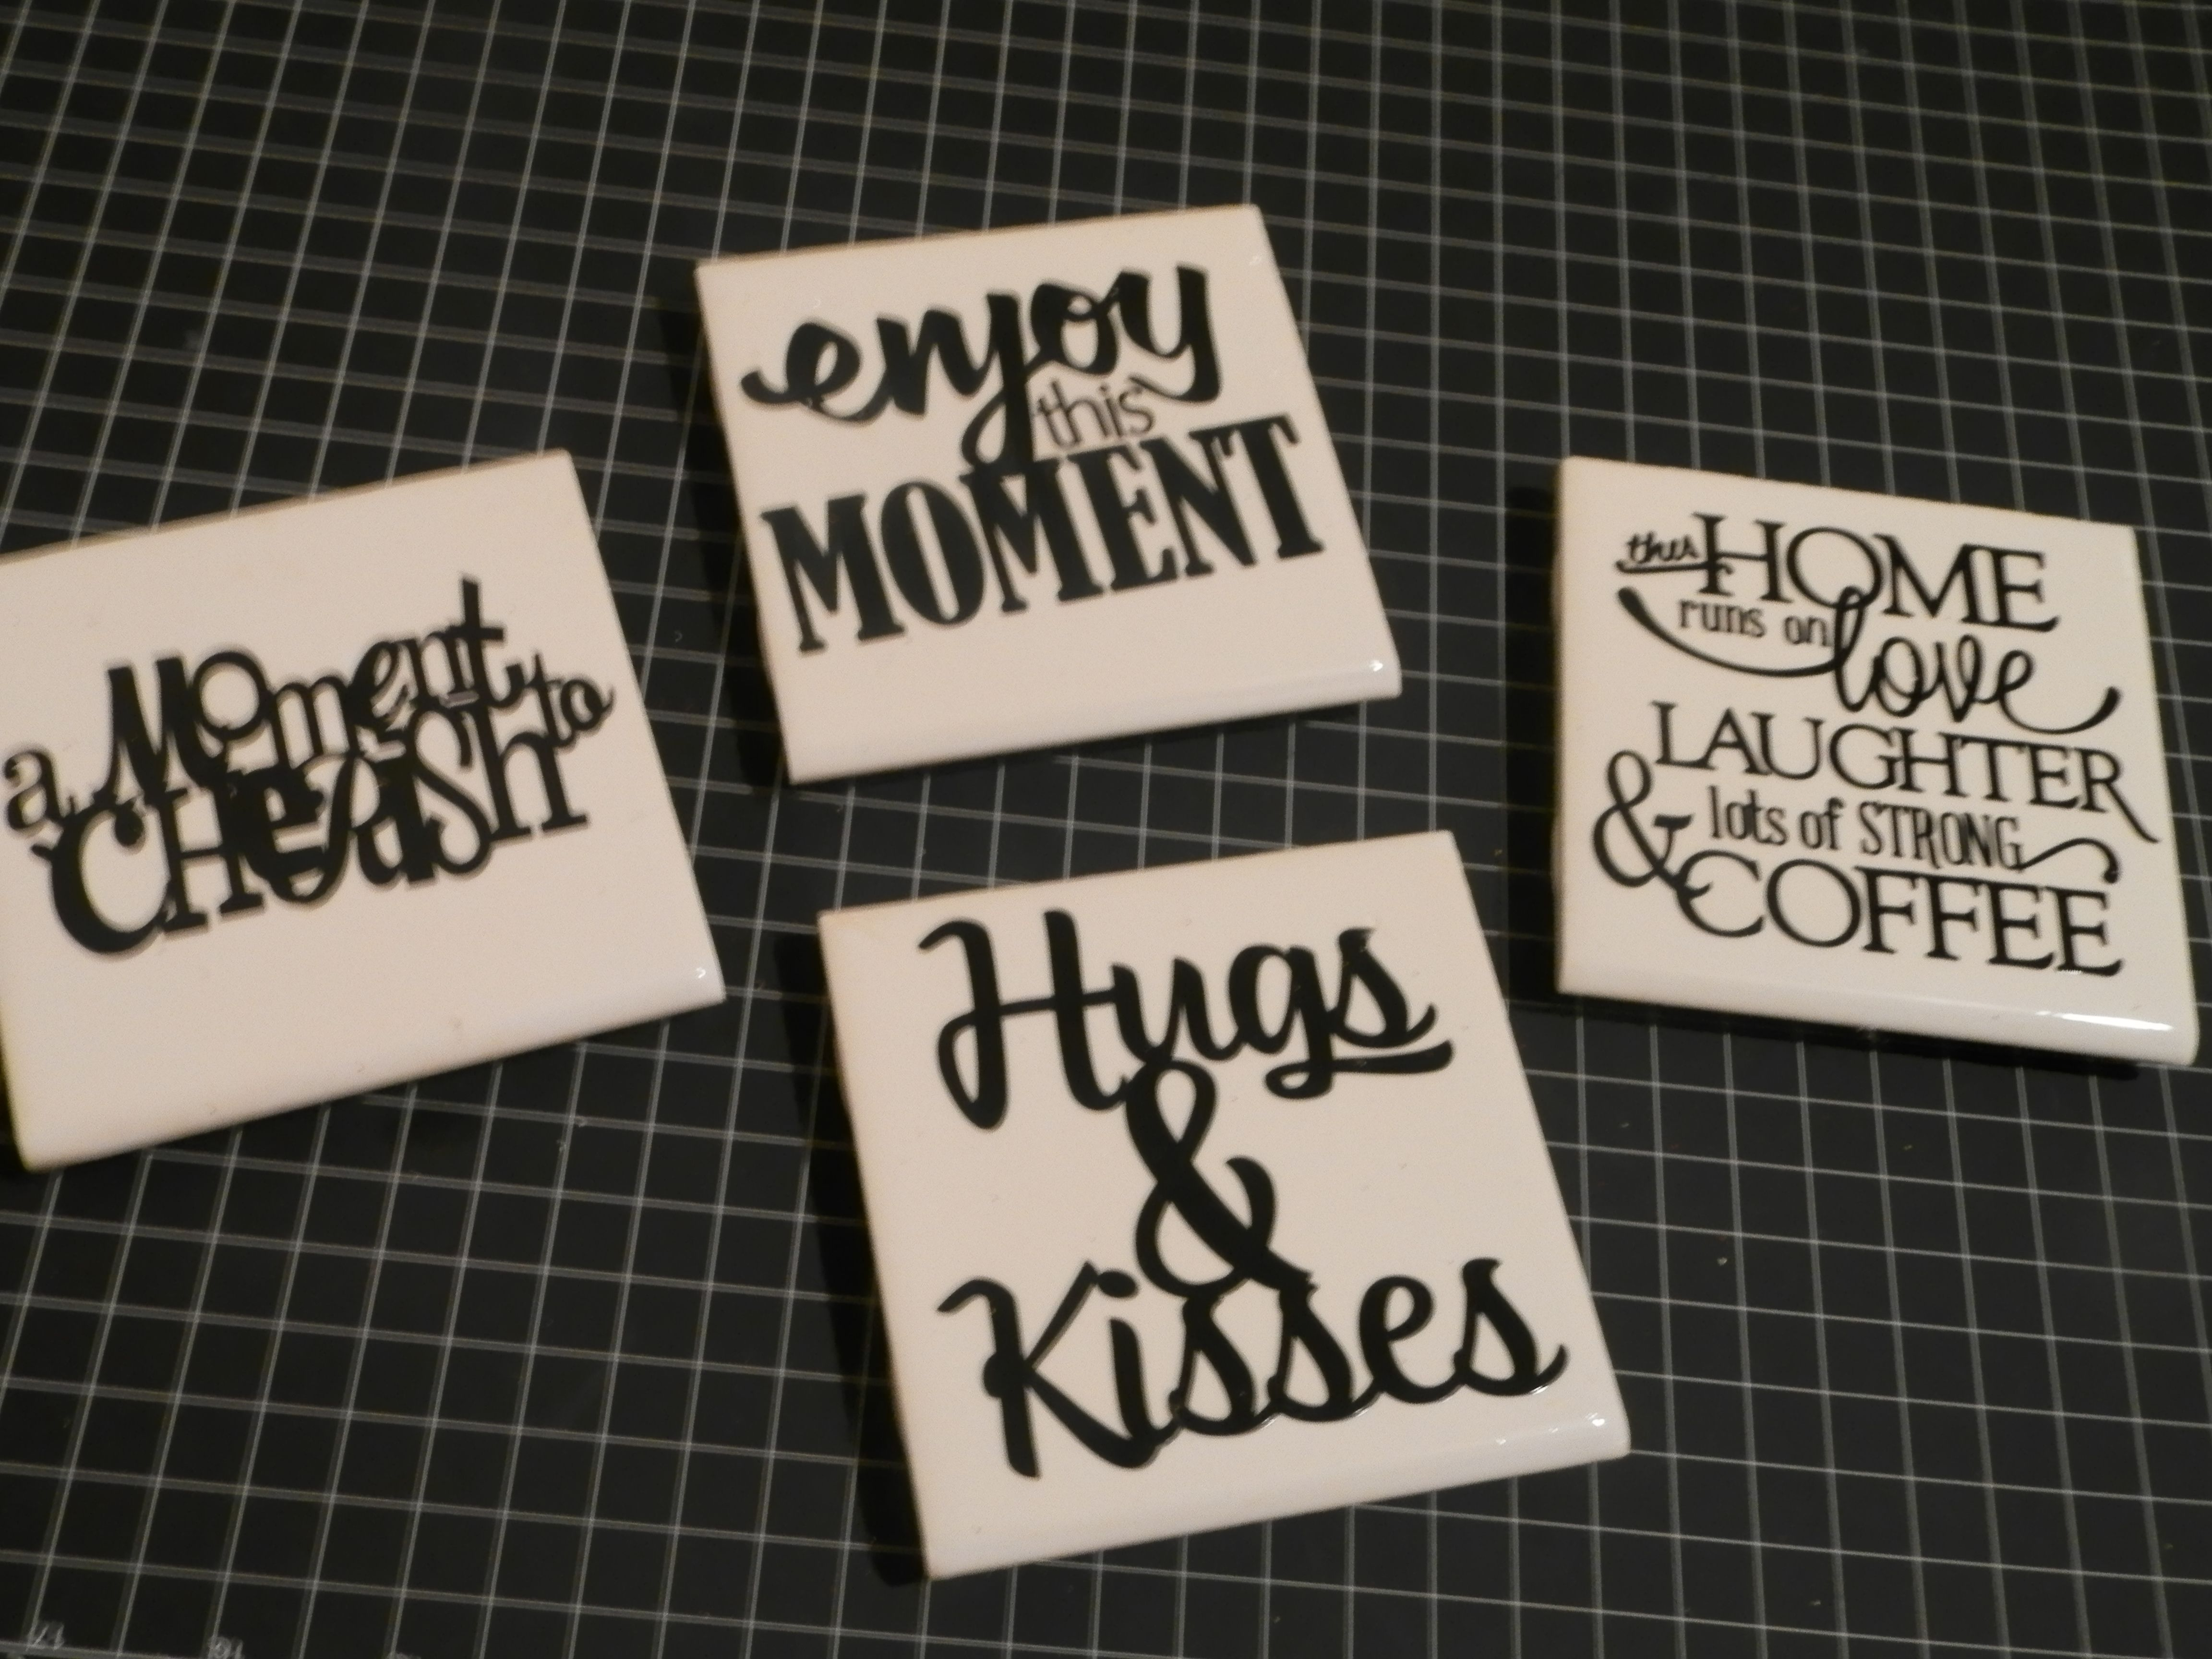 Diy tile coasters with vinyl phrases see video for details my diy tile coasters with vinyl phrases see video for details dailygadgetfo Choice Image